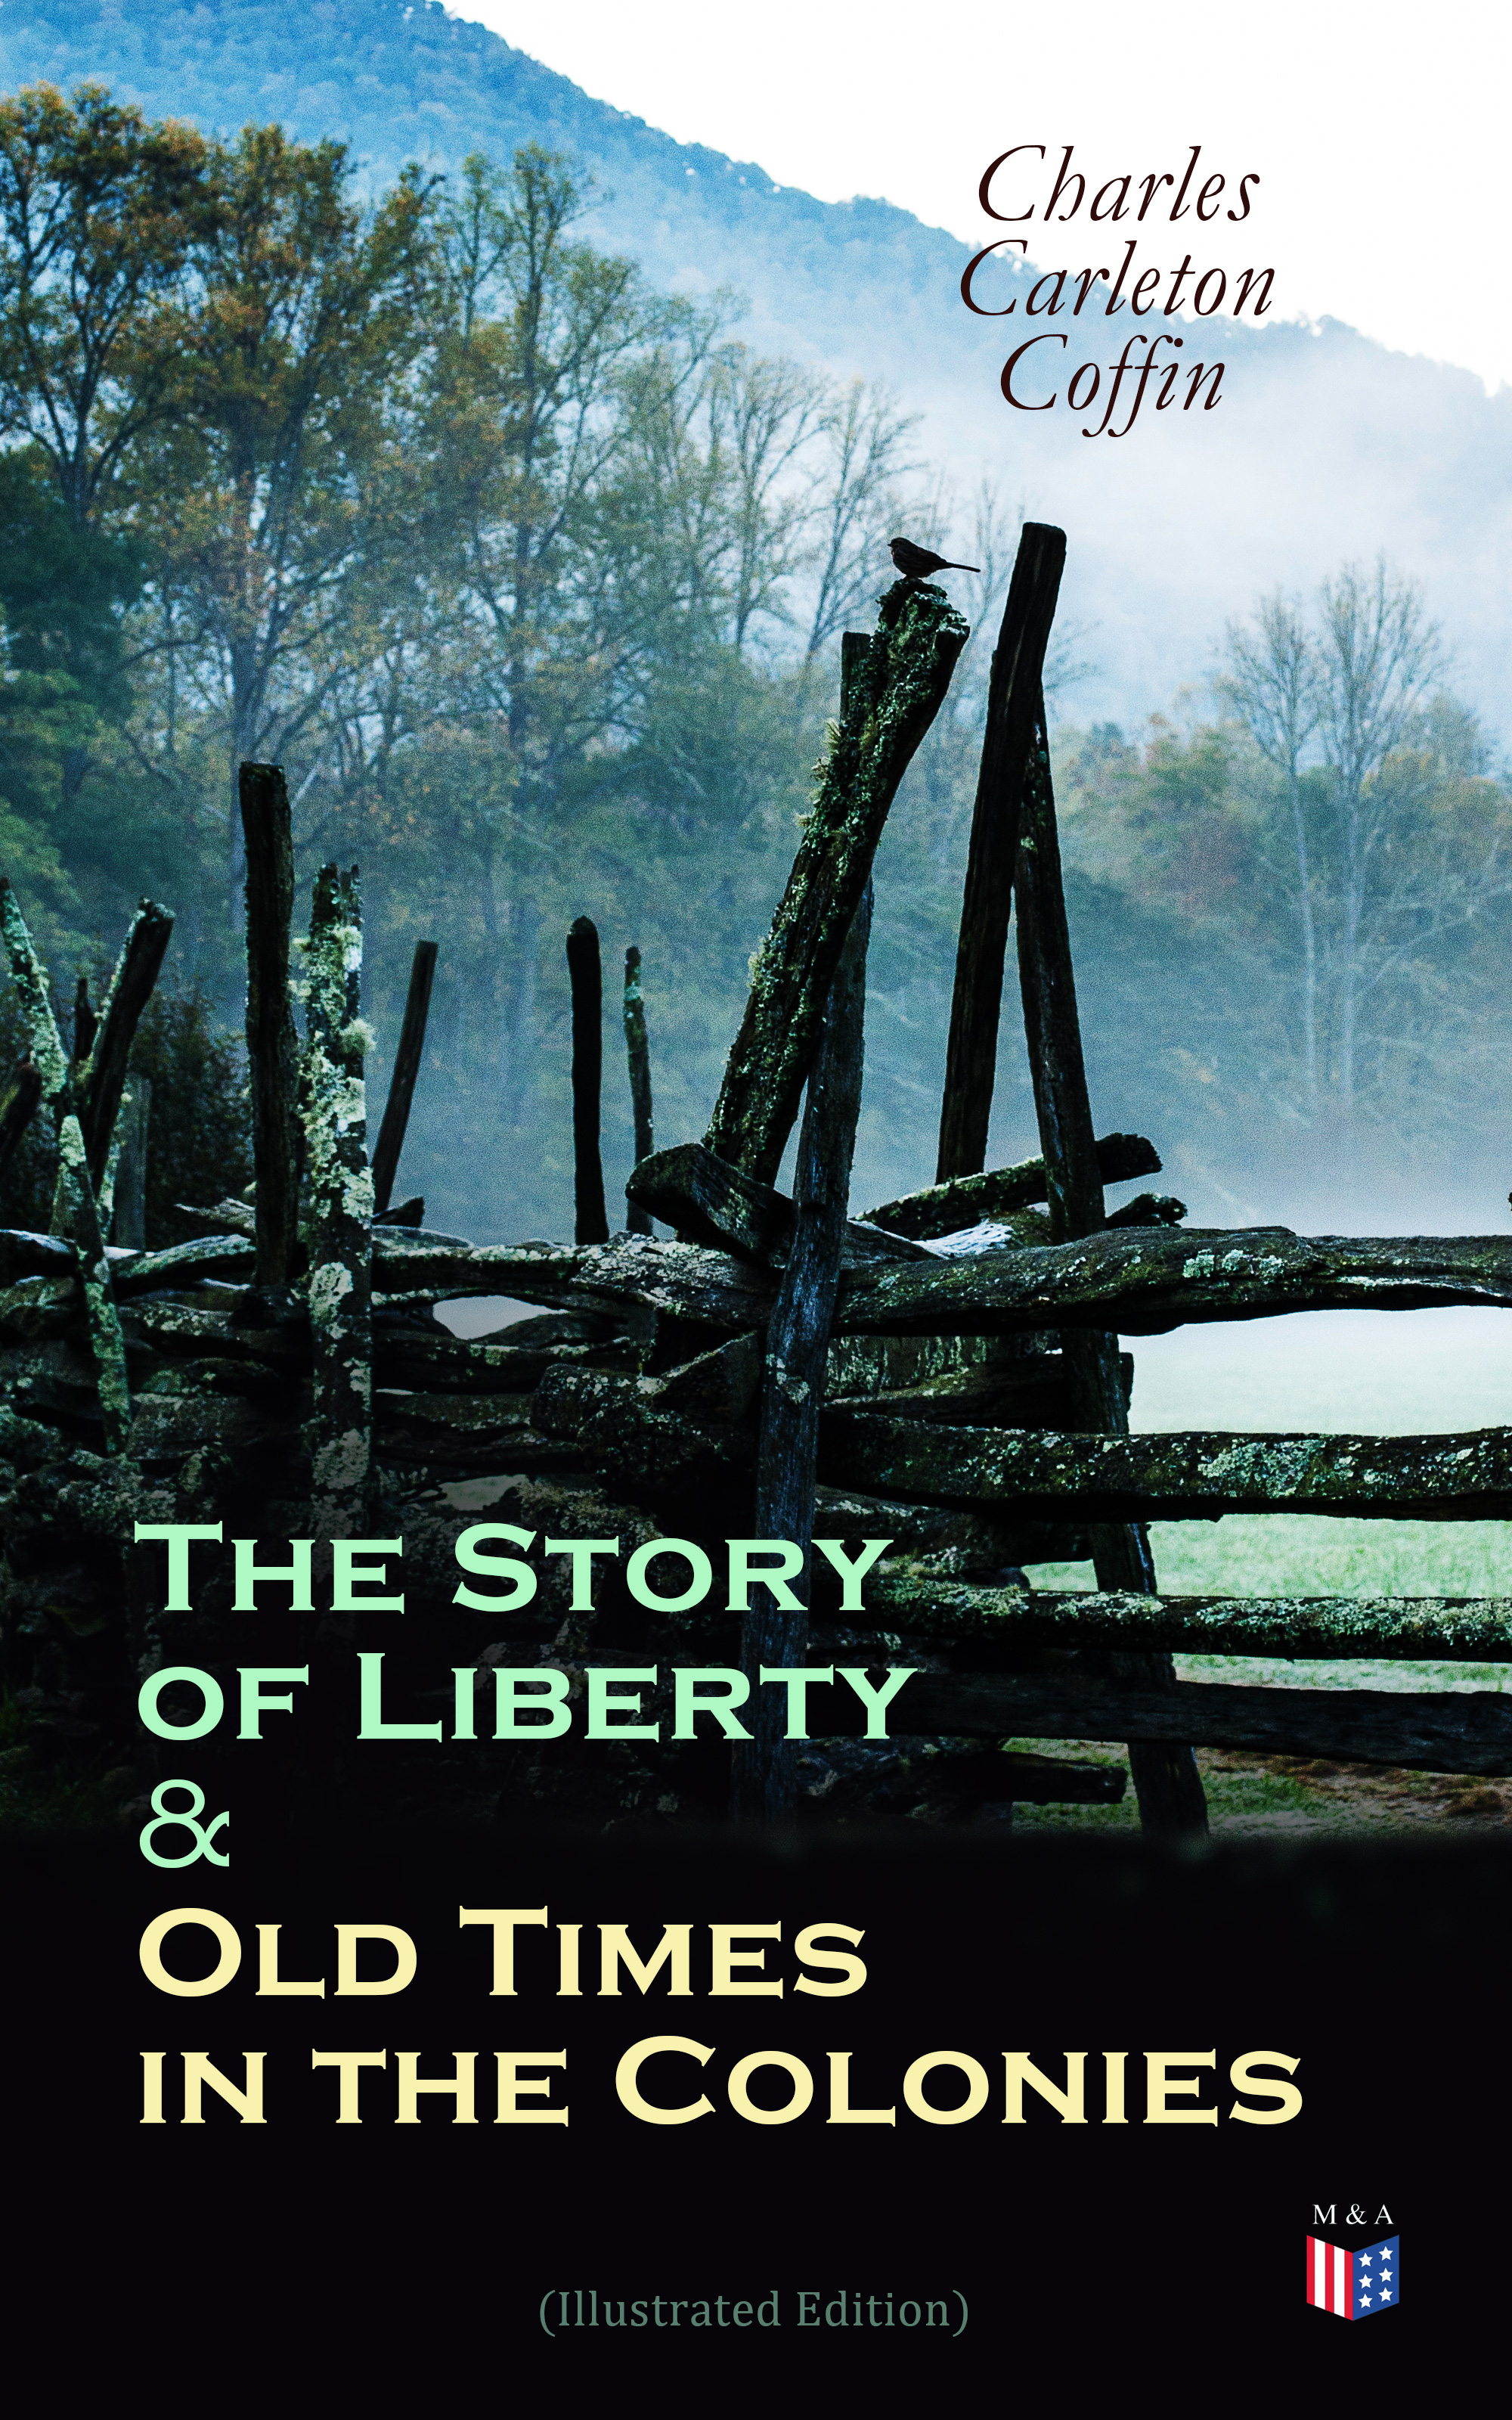 Charles Carleton Coffin The Story of Liberty & Old Times in the Colonies (Illustrated Edition) musicals the definitive illustrated story